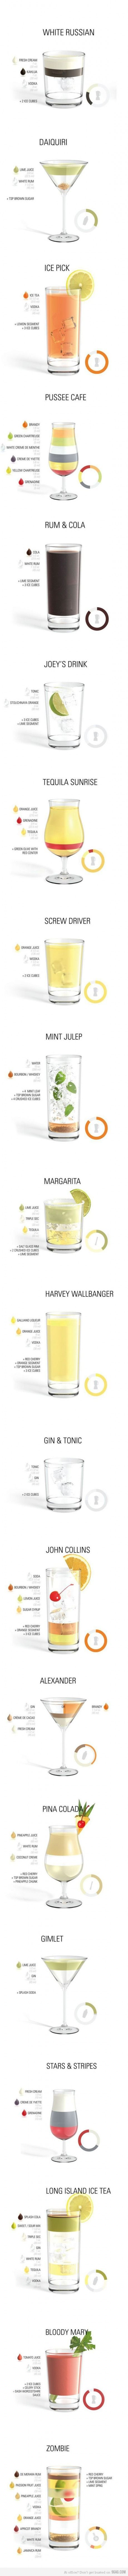 Drinks Infographic #drinks #alcohol #recipes #infographic